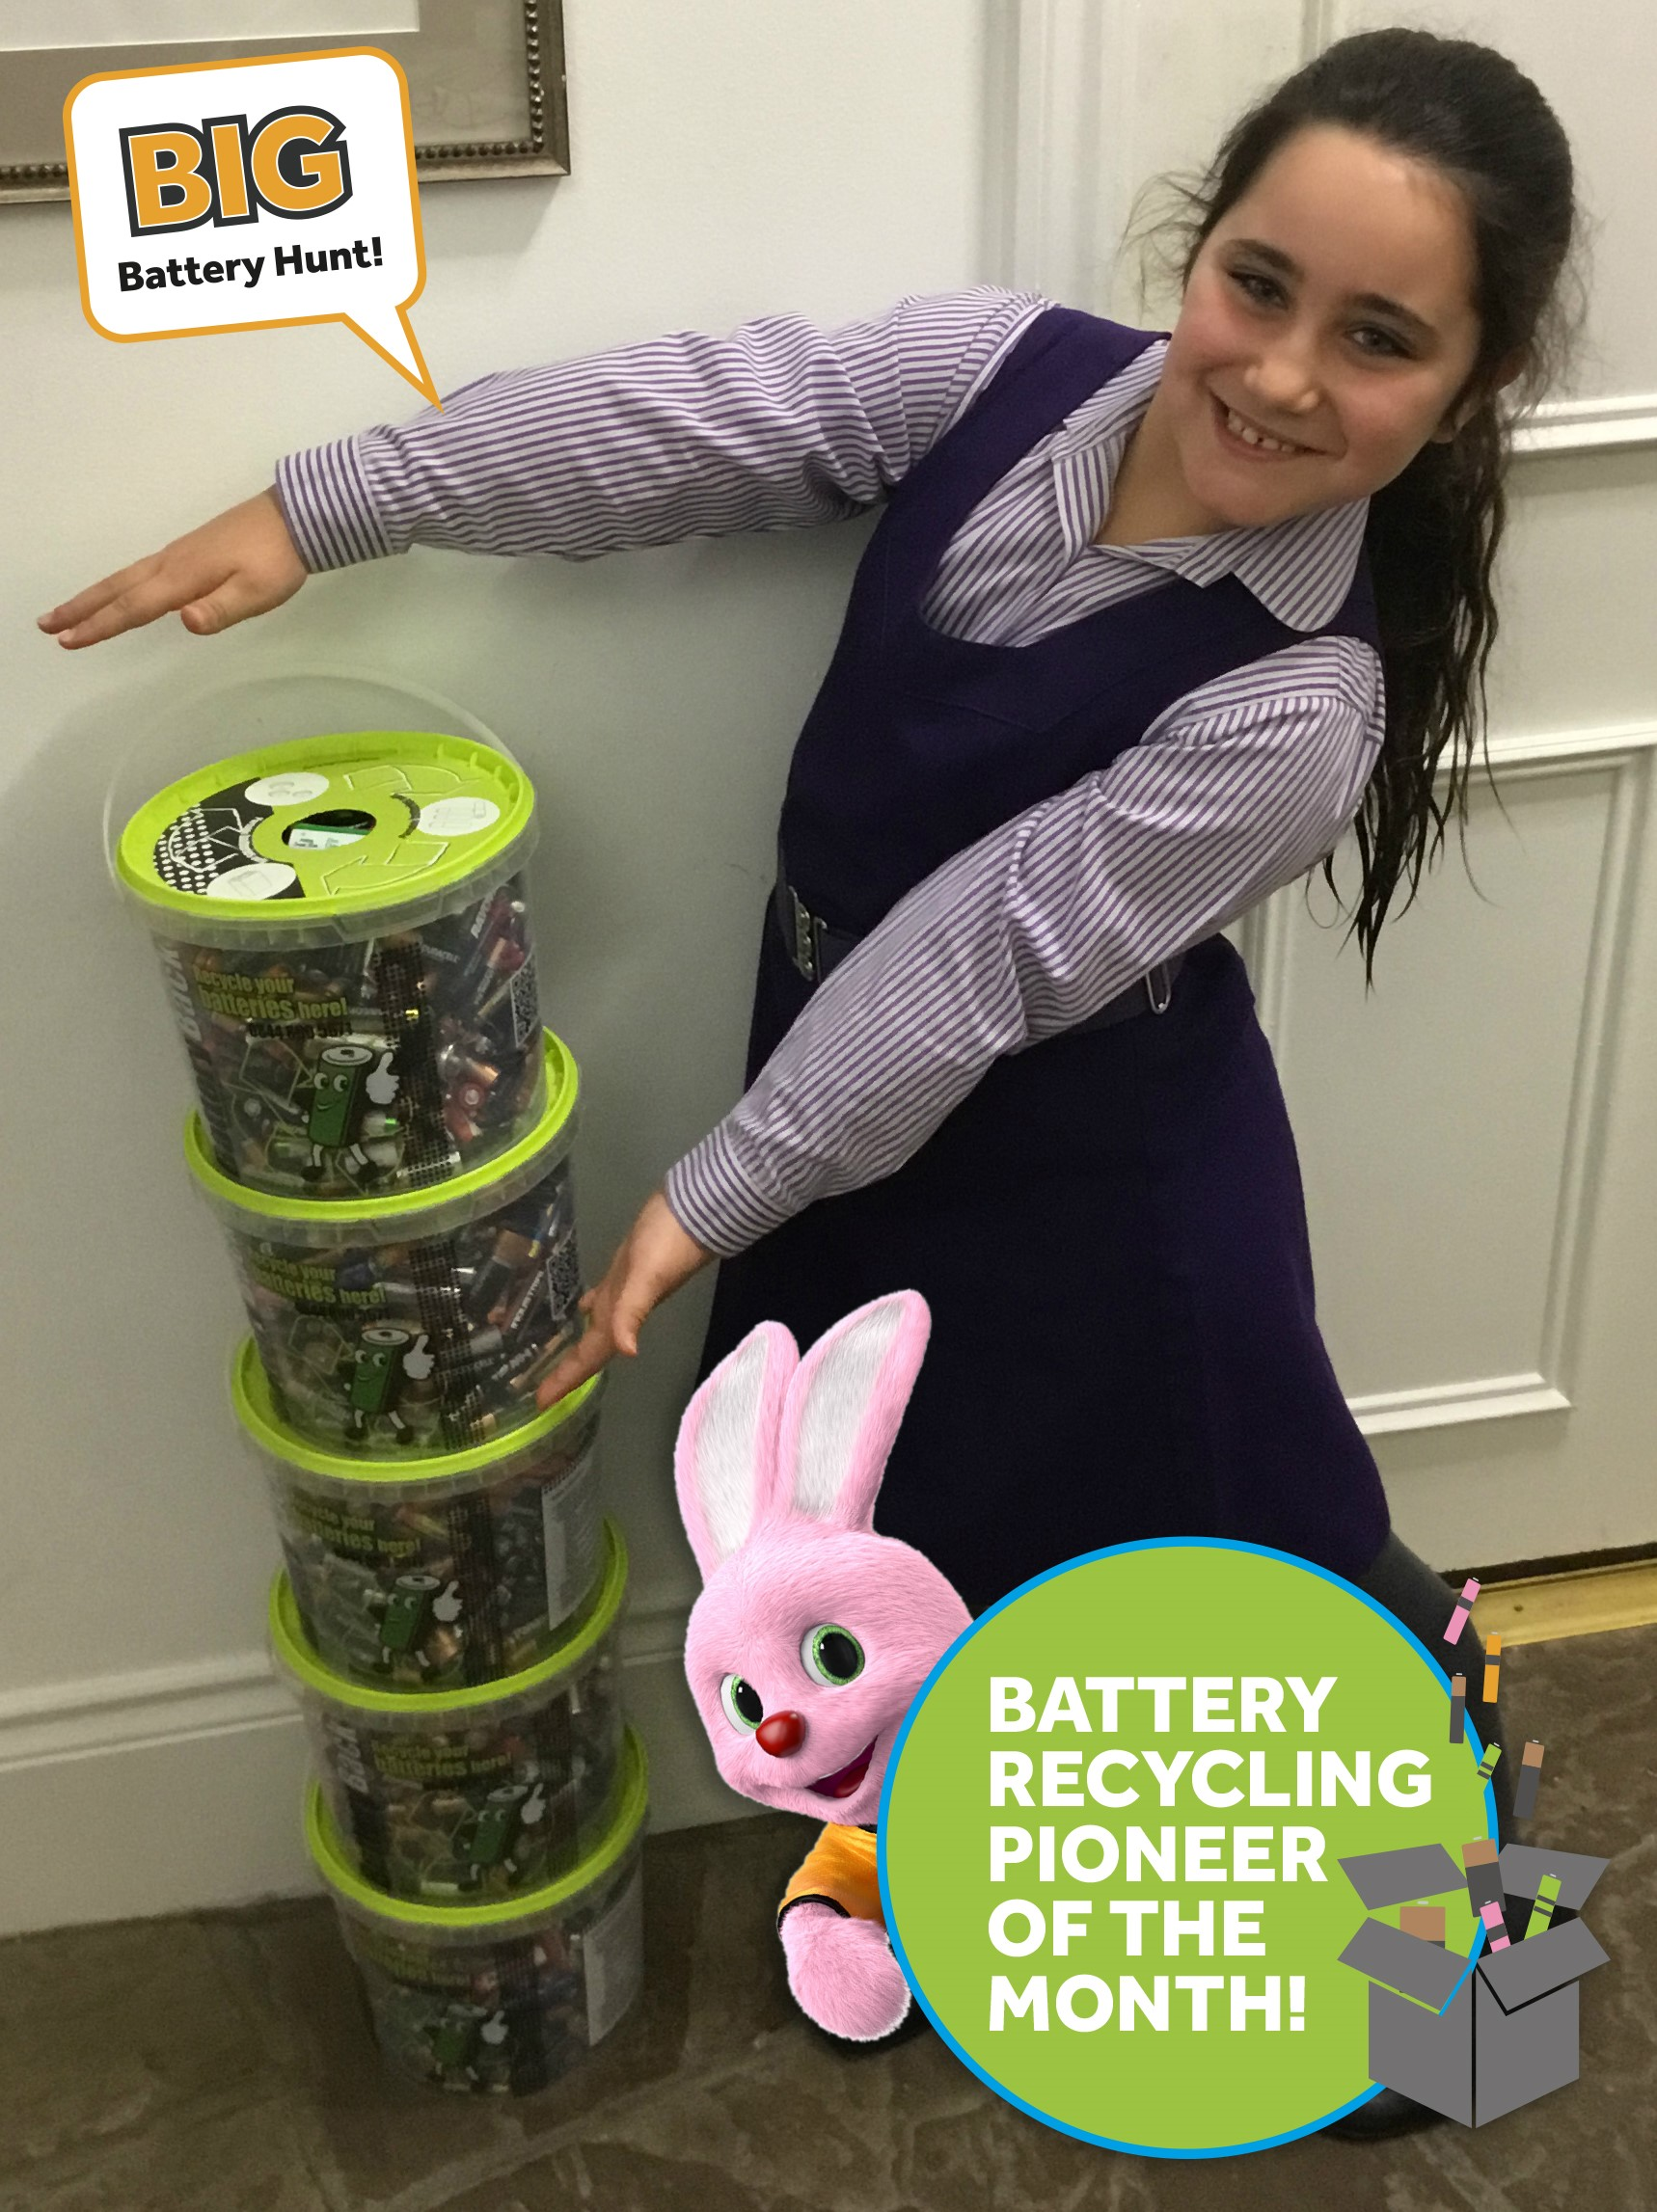 School girl recycling batteries